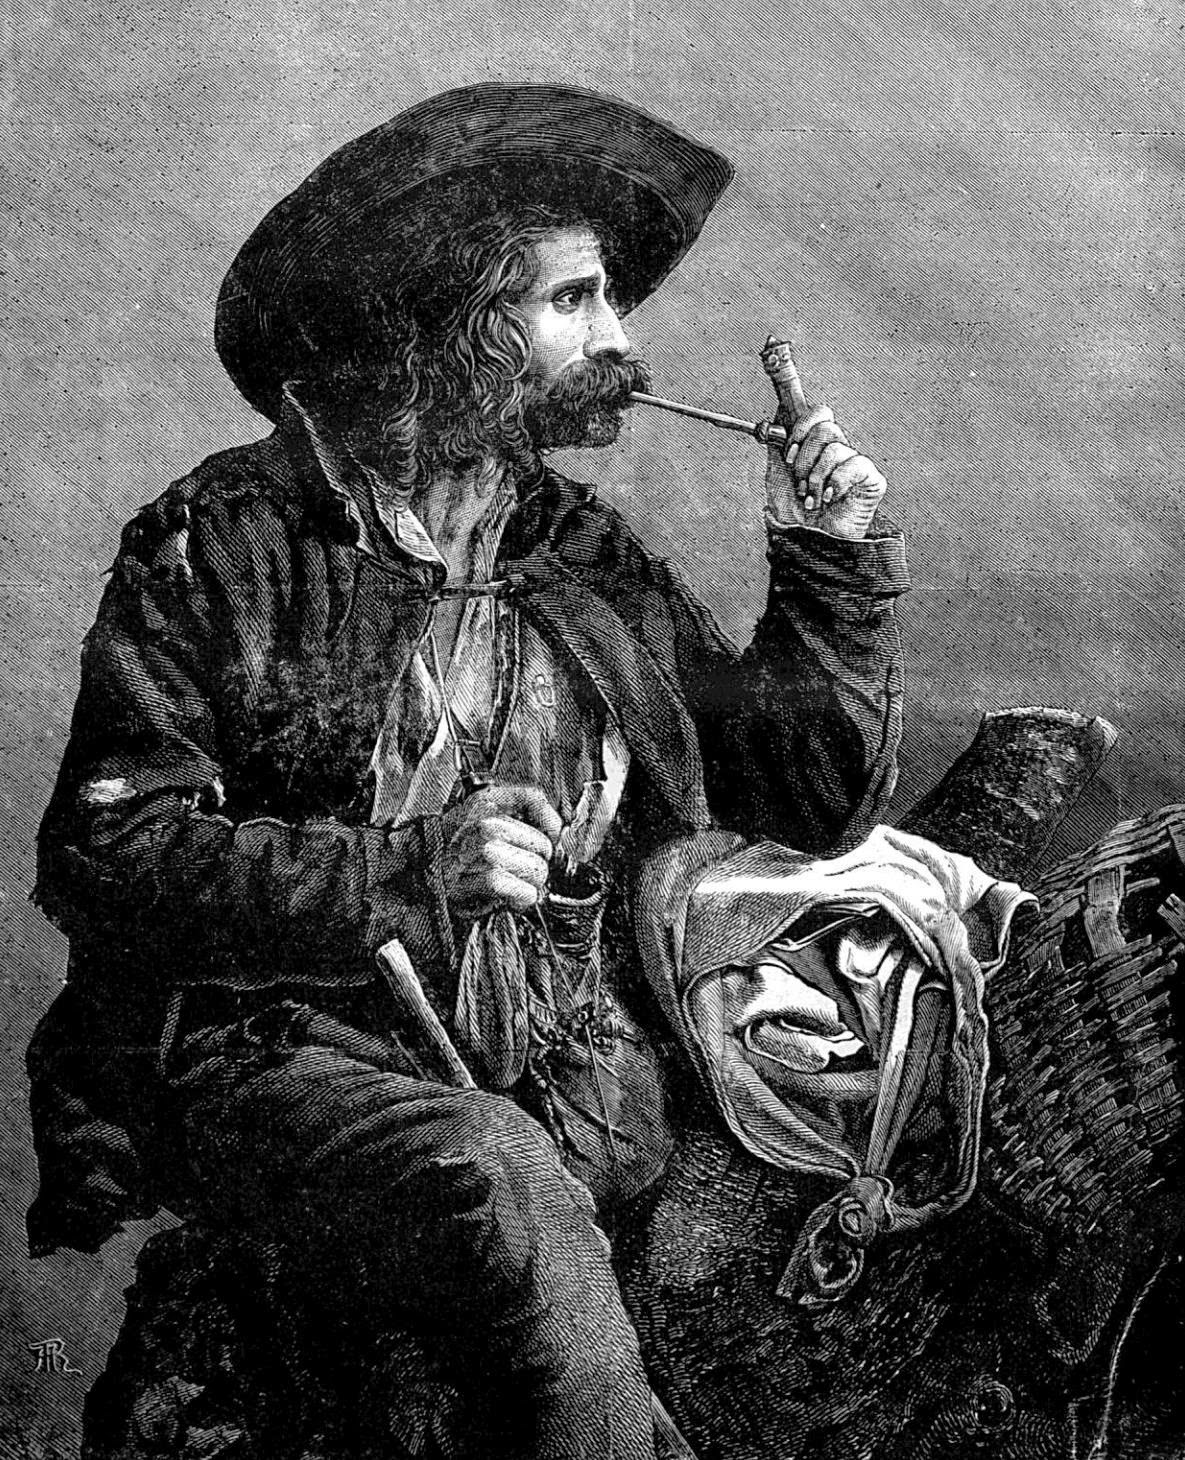 An illustration of the traditional costume of the Vlah gypsies, from a Hungarian book published in 1874.